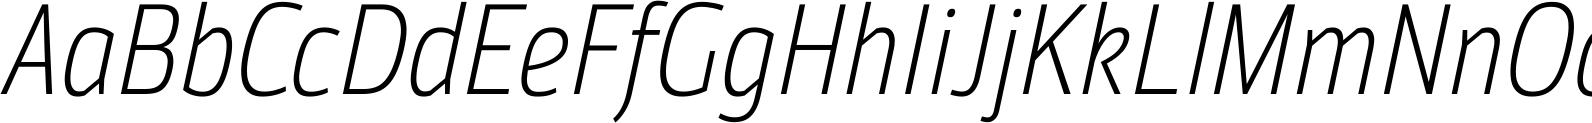 MoveoSansCond LightItalic Font